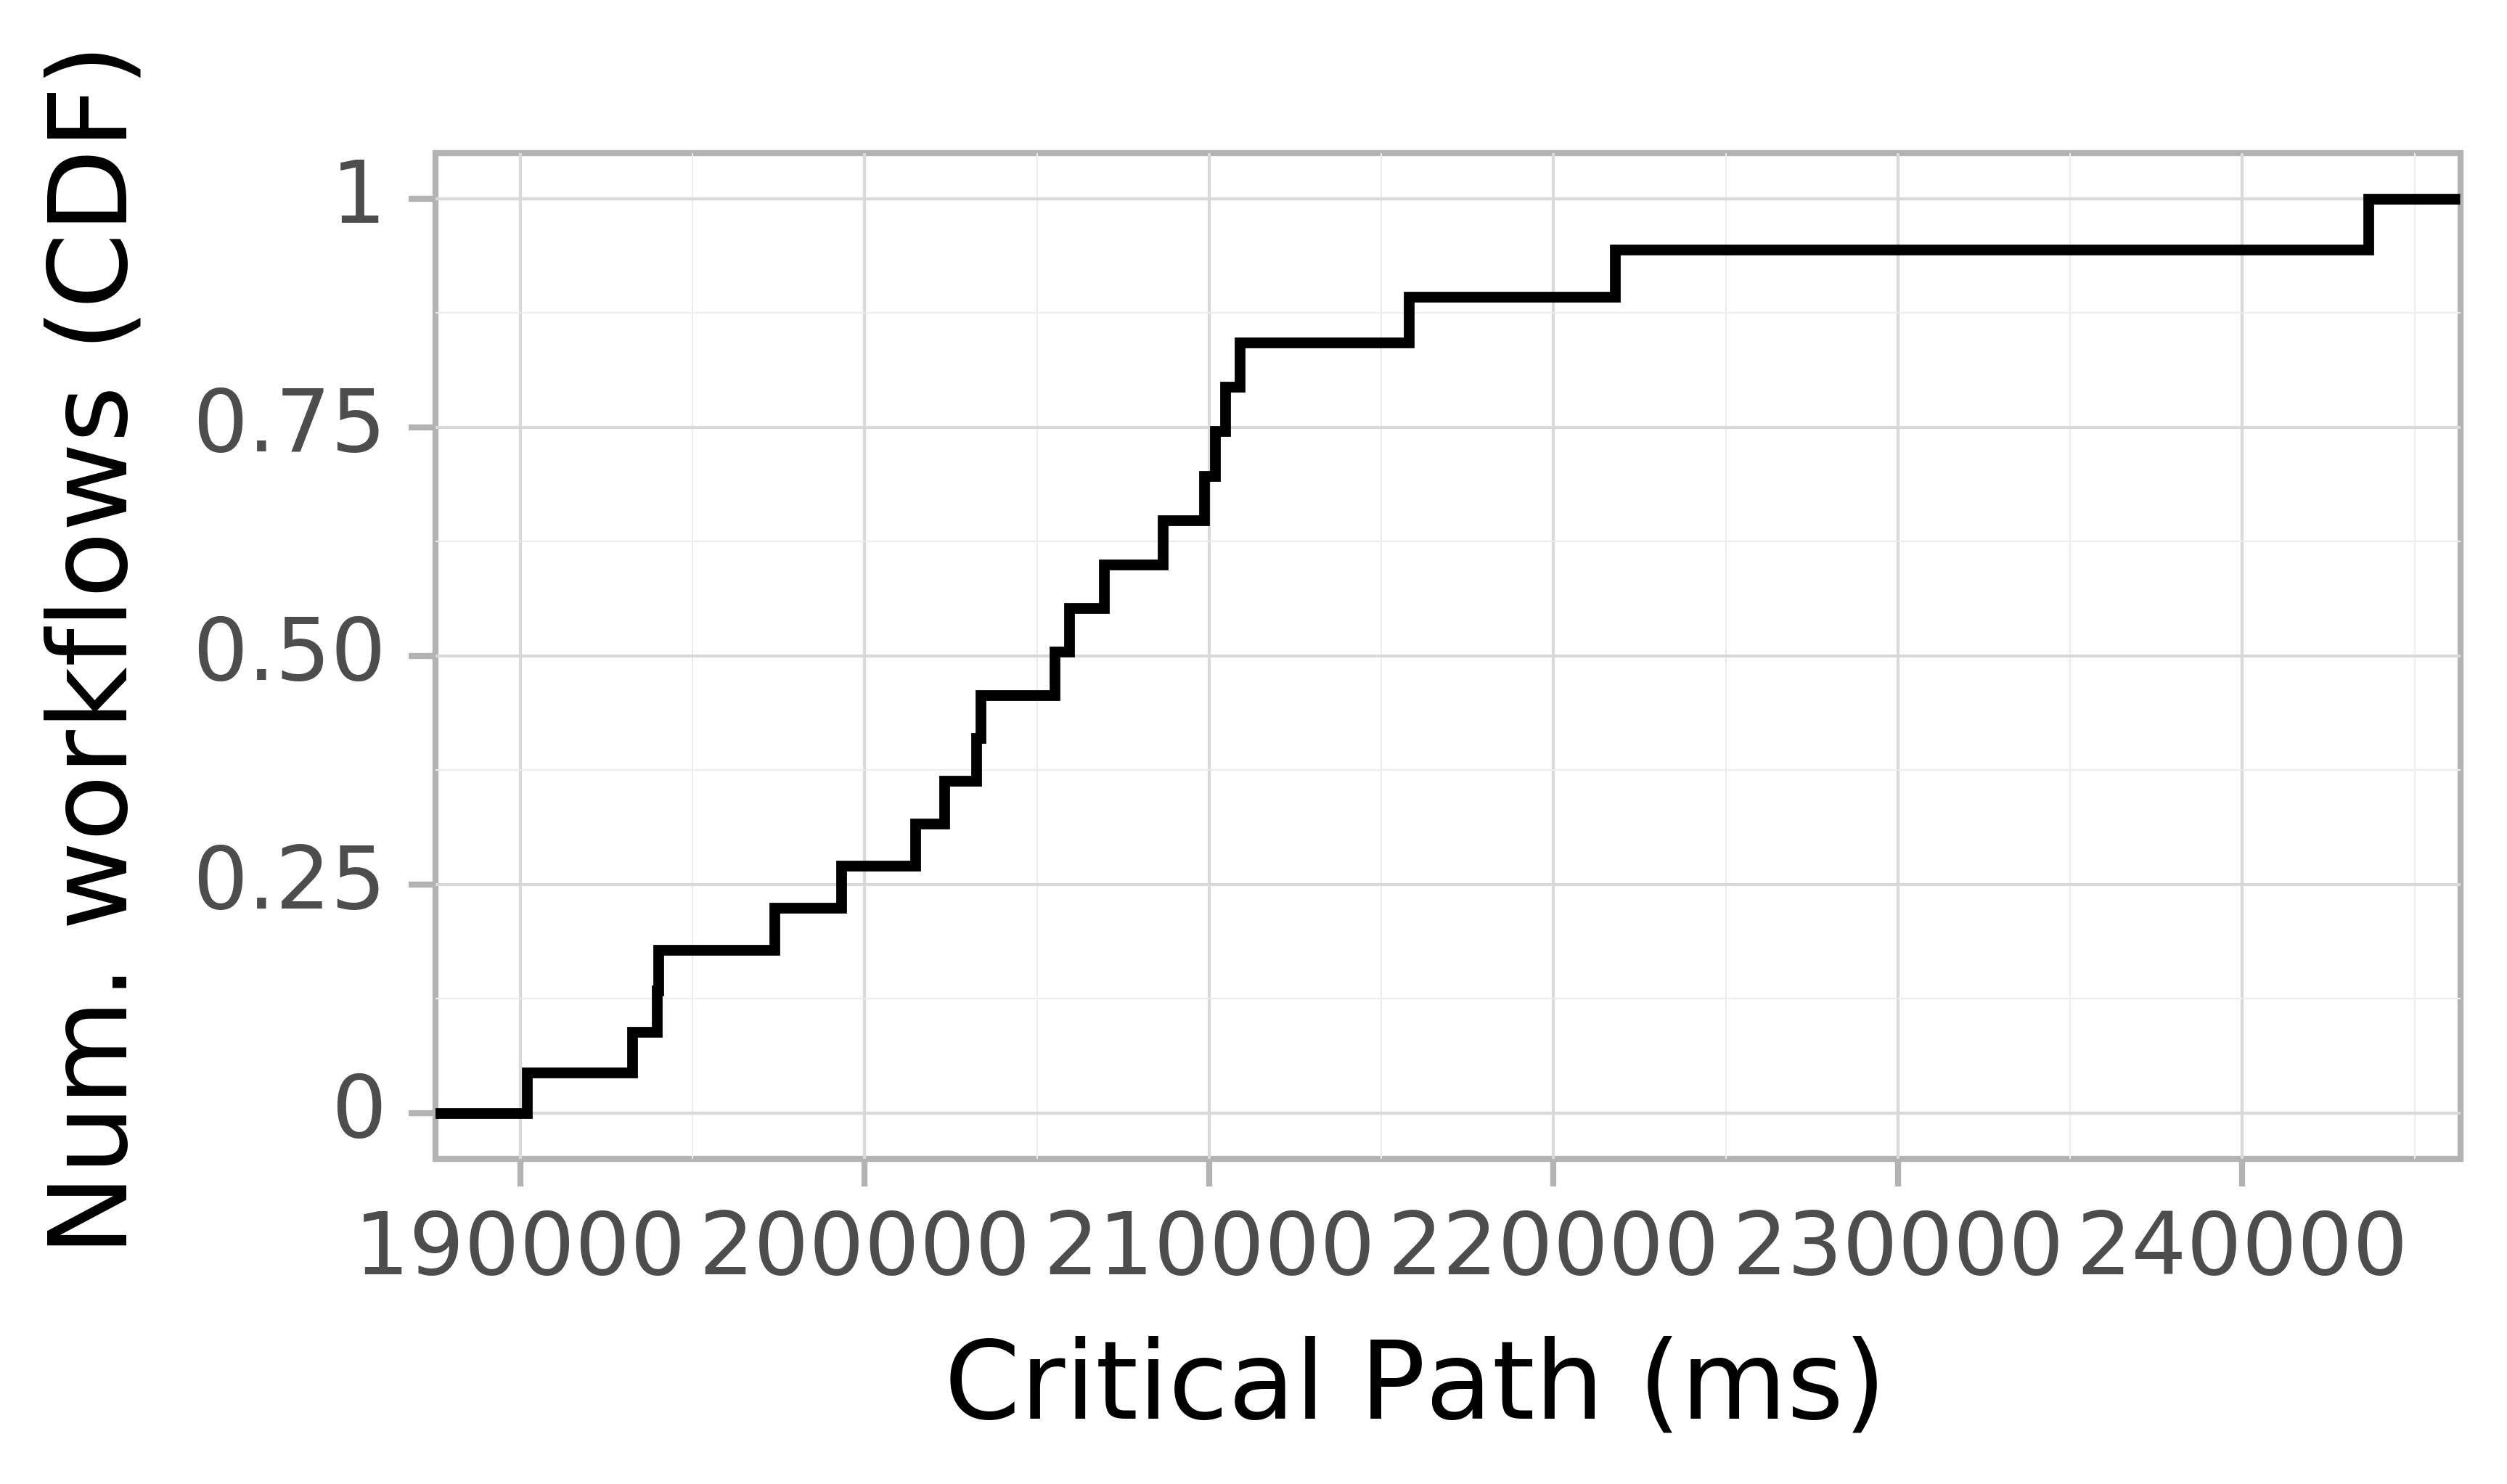 Job runtime CDF graph for the askalon-new_ee36 trace.